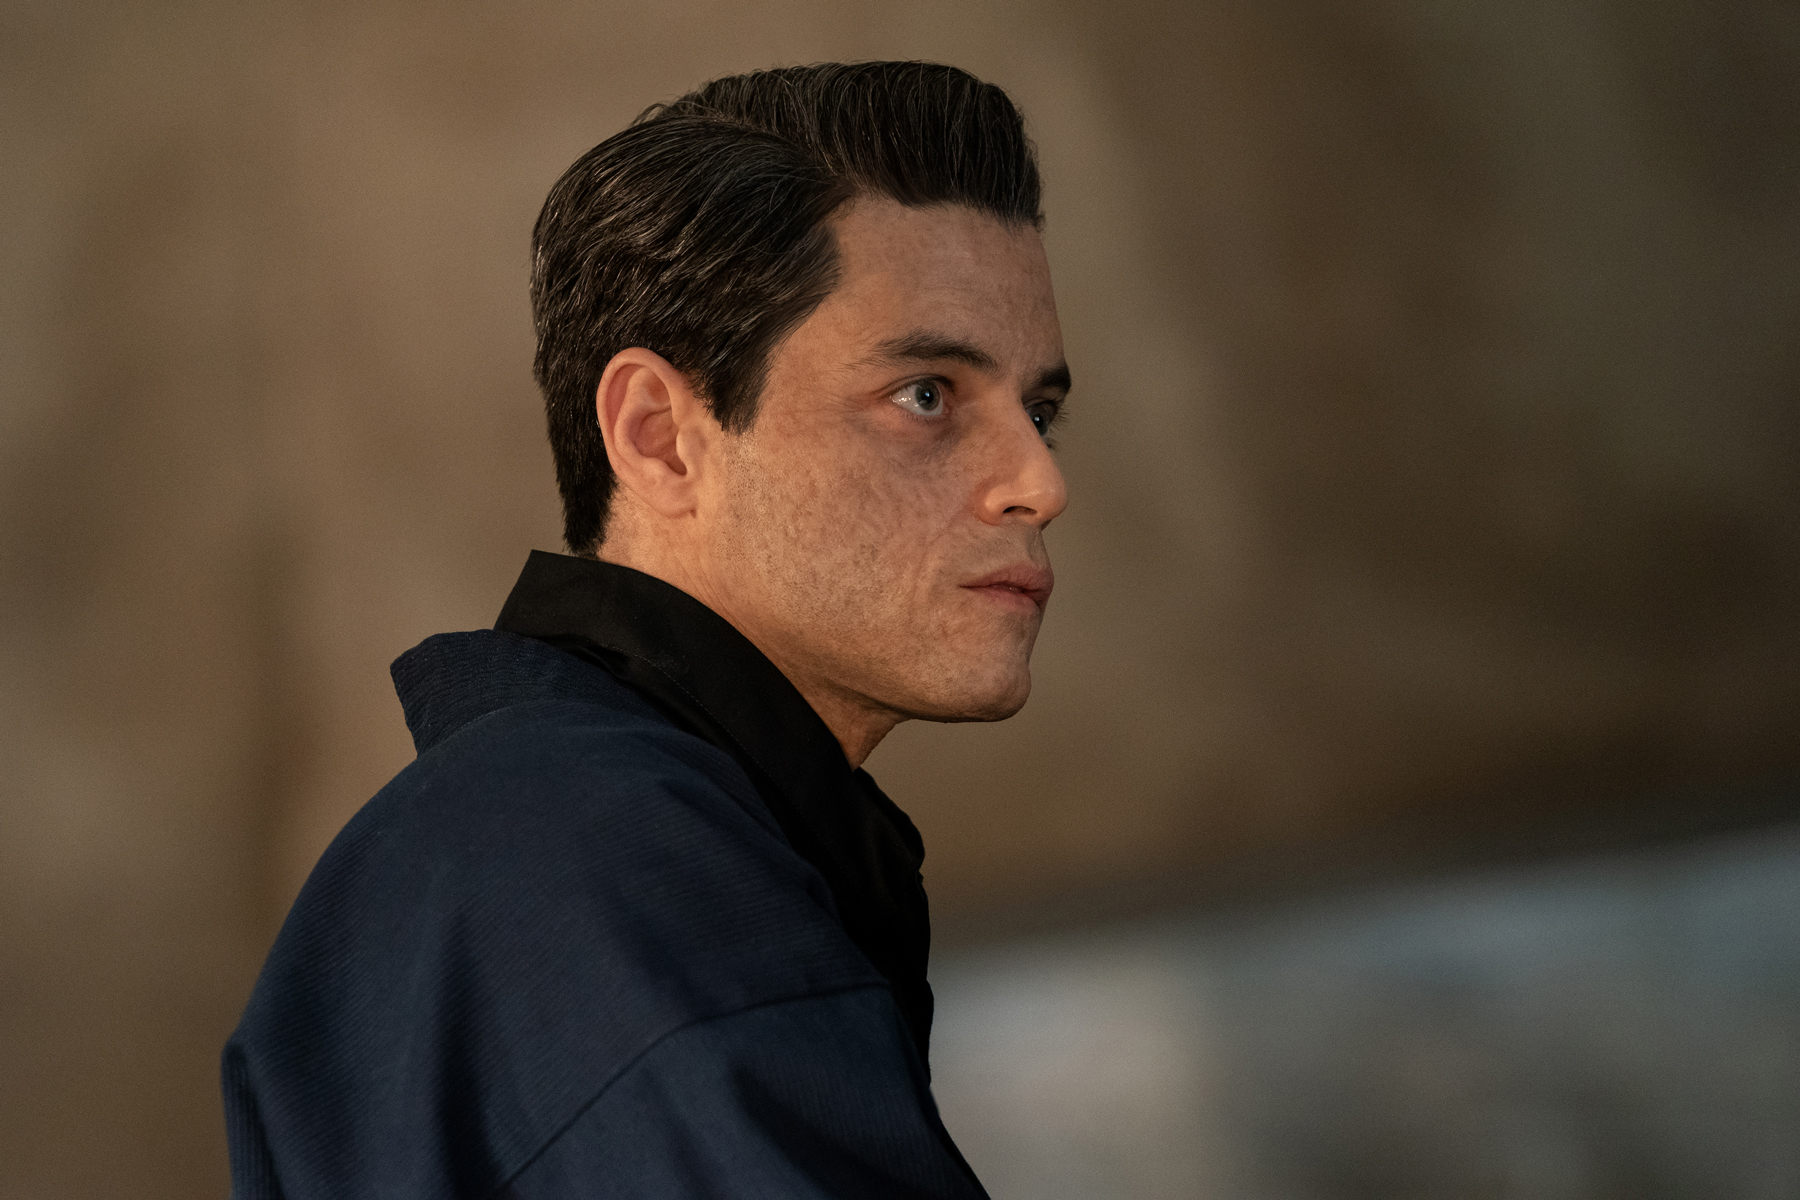 Rami Malek Discusses the Nefarious Nature of His Bond Villain Safin in New Teaser